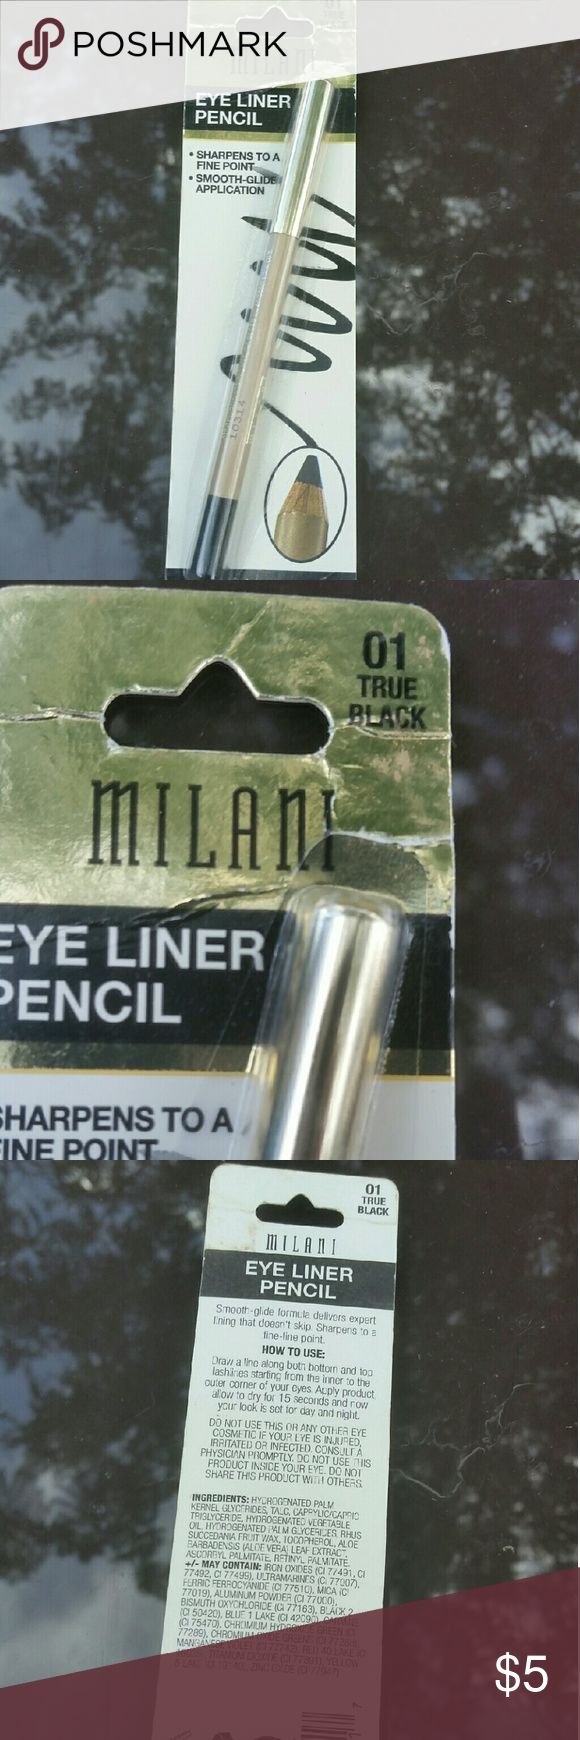 *LAST CHANCE* MILANI EYELINER PENCIL *NEW IN PACKAGING  *I USE THE BROWN ONE INSTEAD  *THEY HAVE GREAT PIGMENTATION   FYI: I AM A CERTIFIED/FREELANCE MAKEUP ARTIST, SO ANY MAKEUP PRODUCTS I SALE THAT HAVE BEEN USED I MAKE SURE TO STERILIZE BEFORE SELLING Milani Makeup Eyeliner